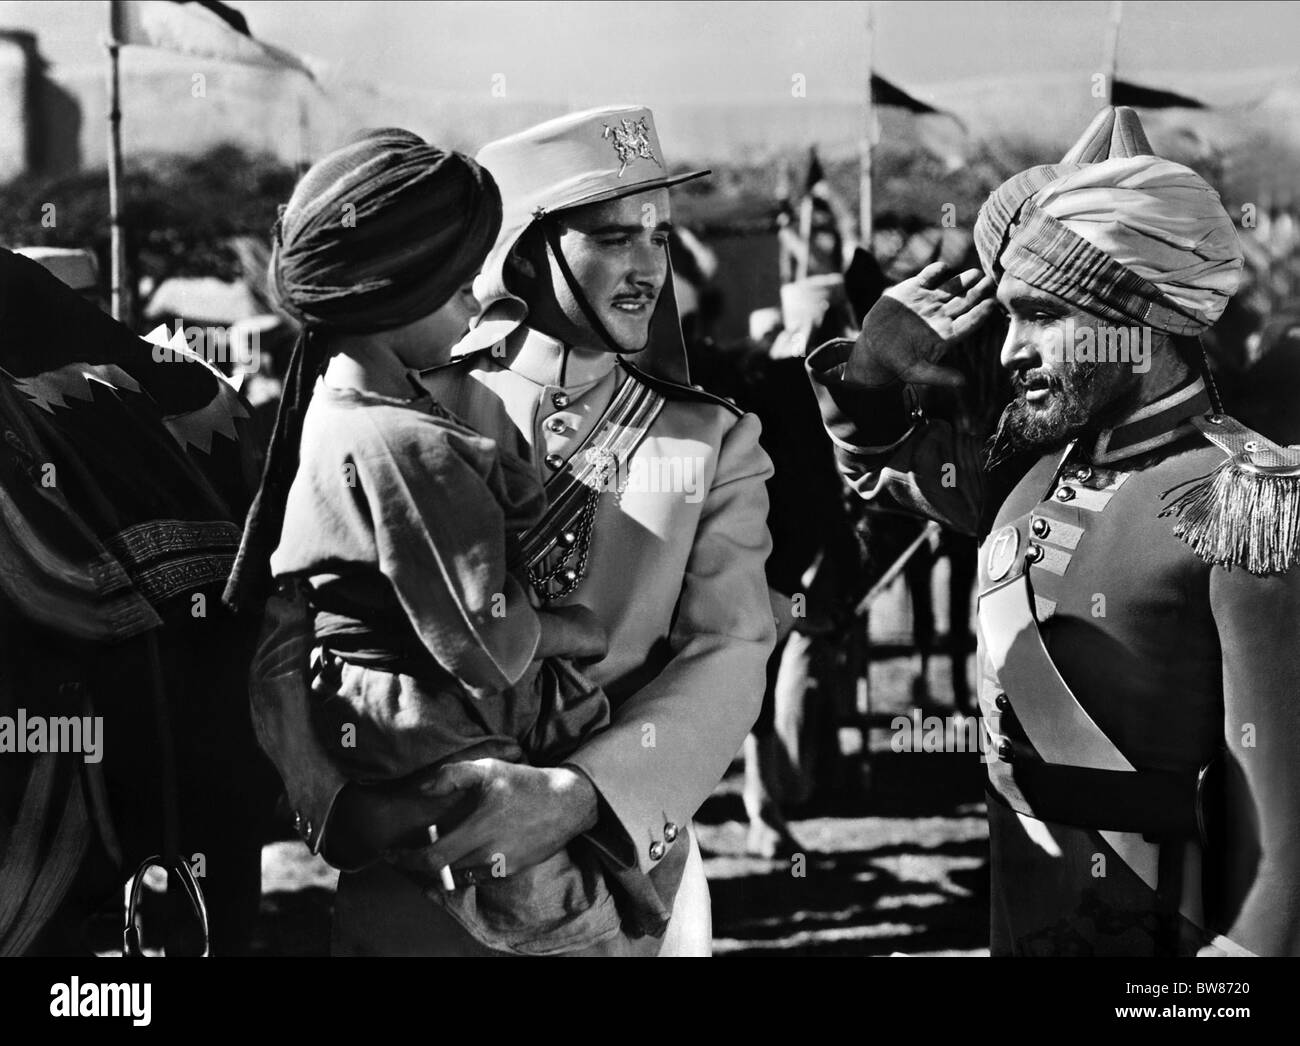 SCENE WITH ERROL FLYNN THE CHARGE OF THE LIGHT BRIGADE (1936) - Stock Image